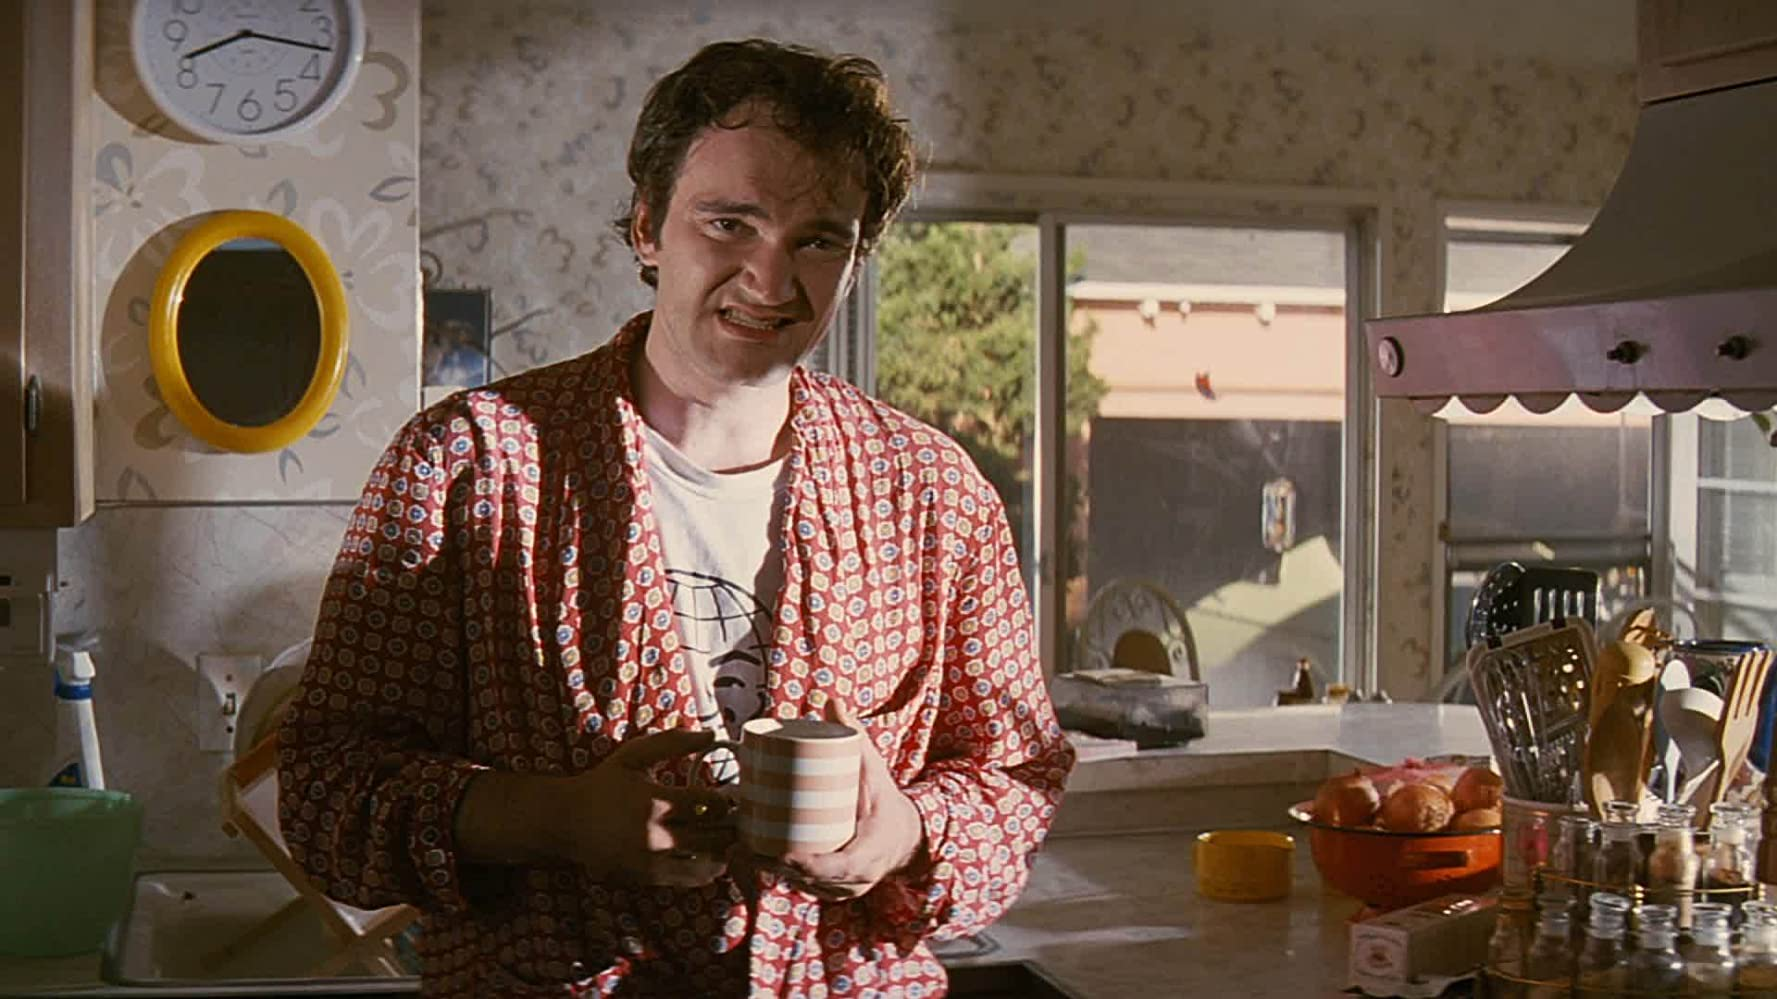 Quentin Tarantino in Pulp Fiction (1994)